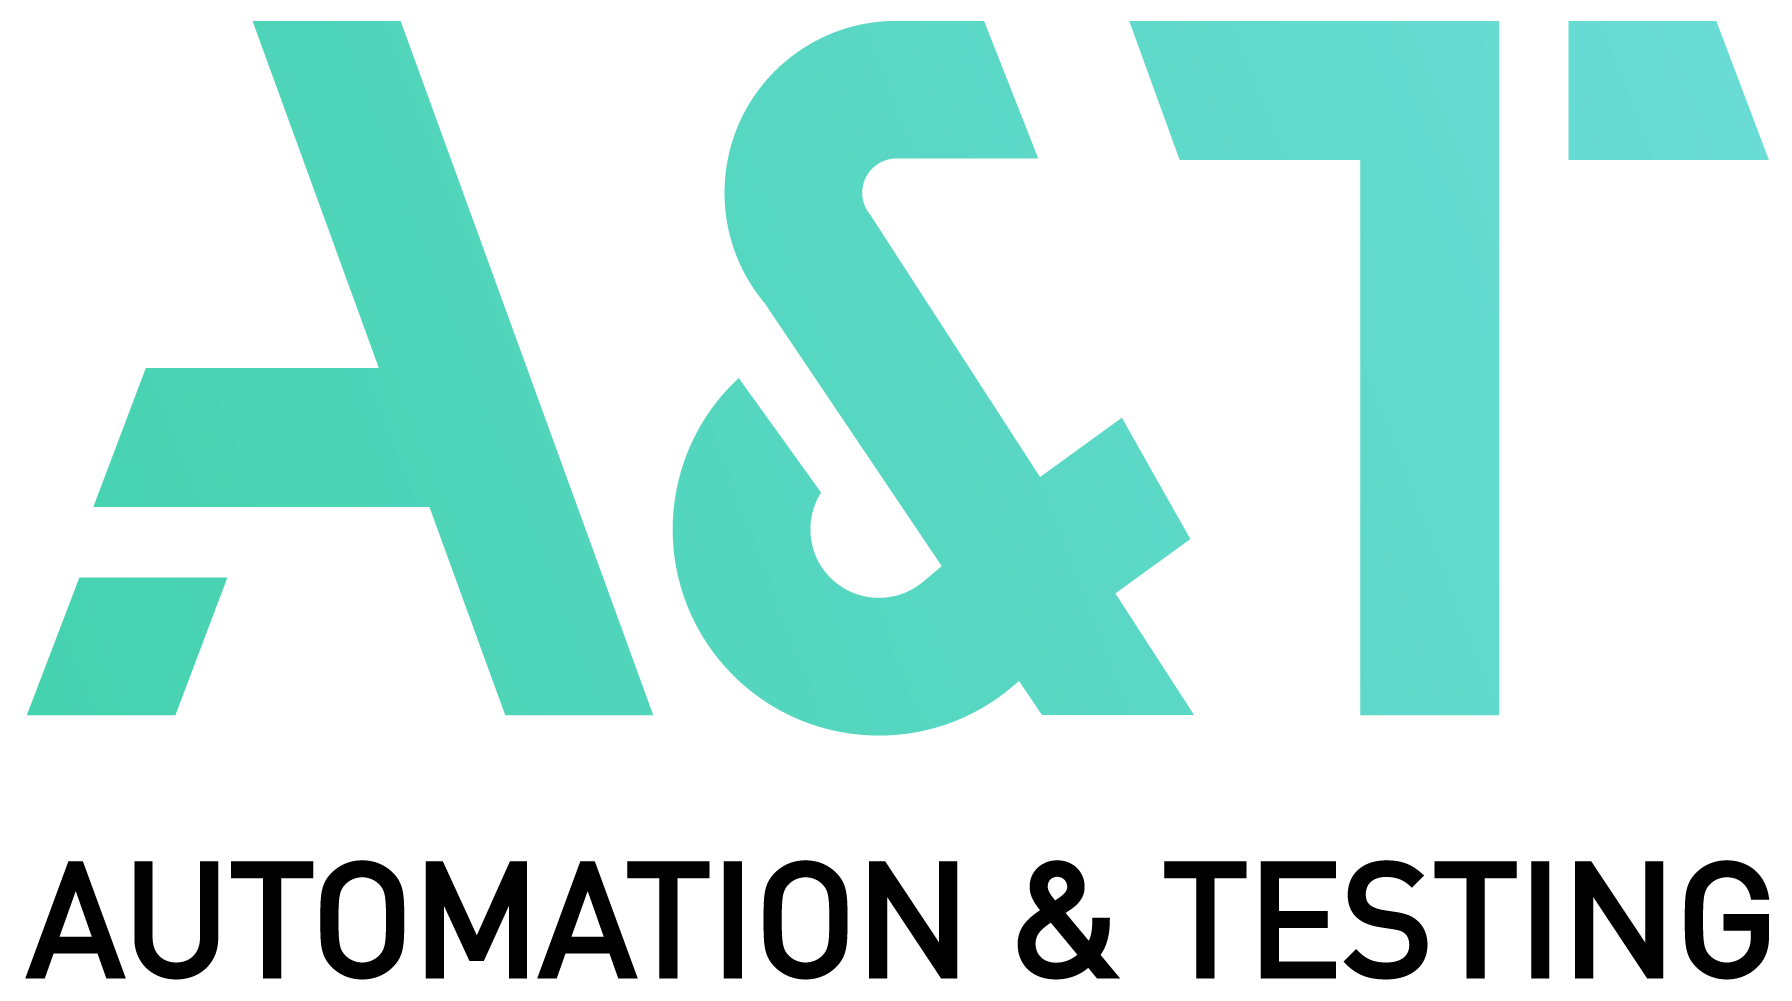 A&T Automation and Testing